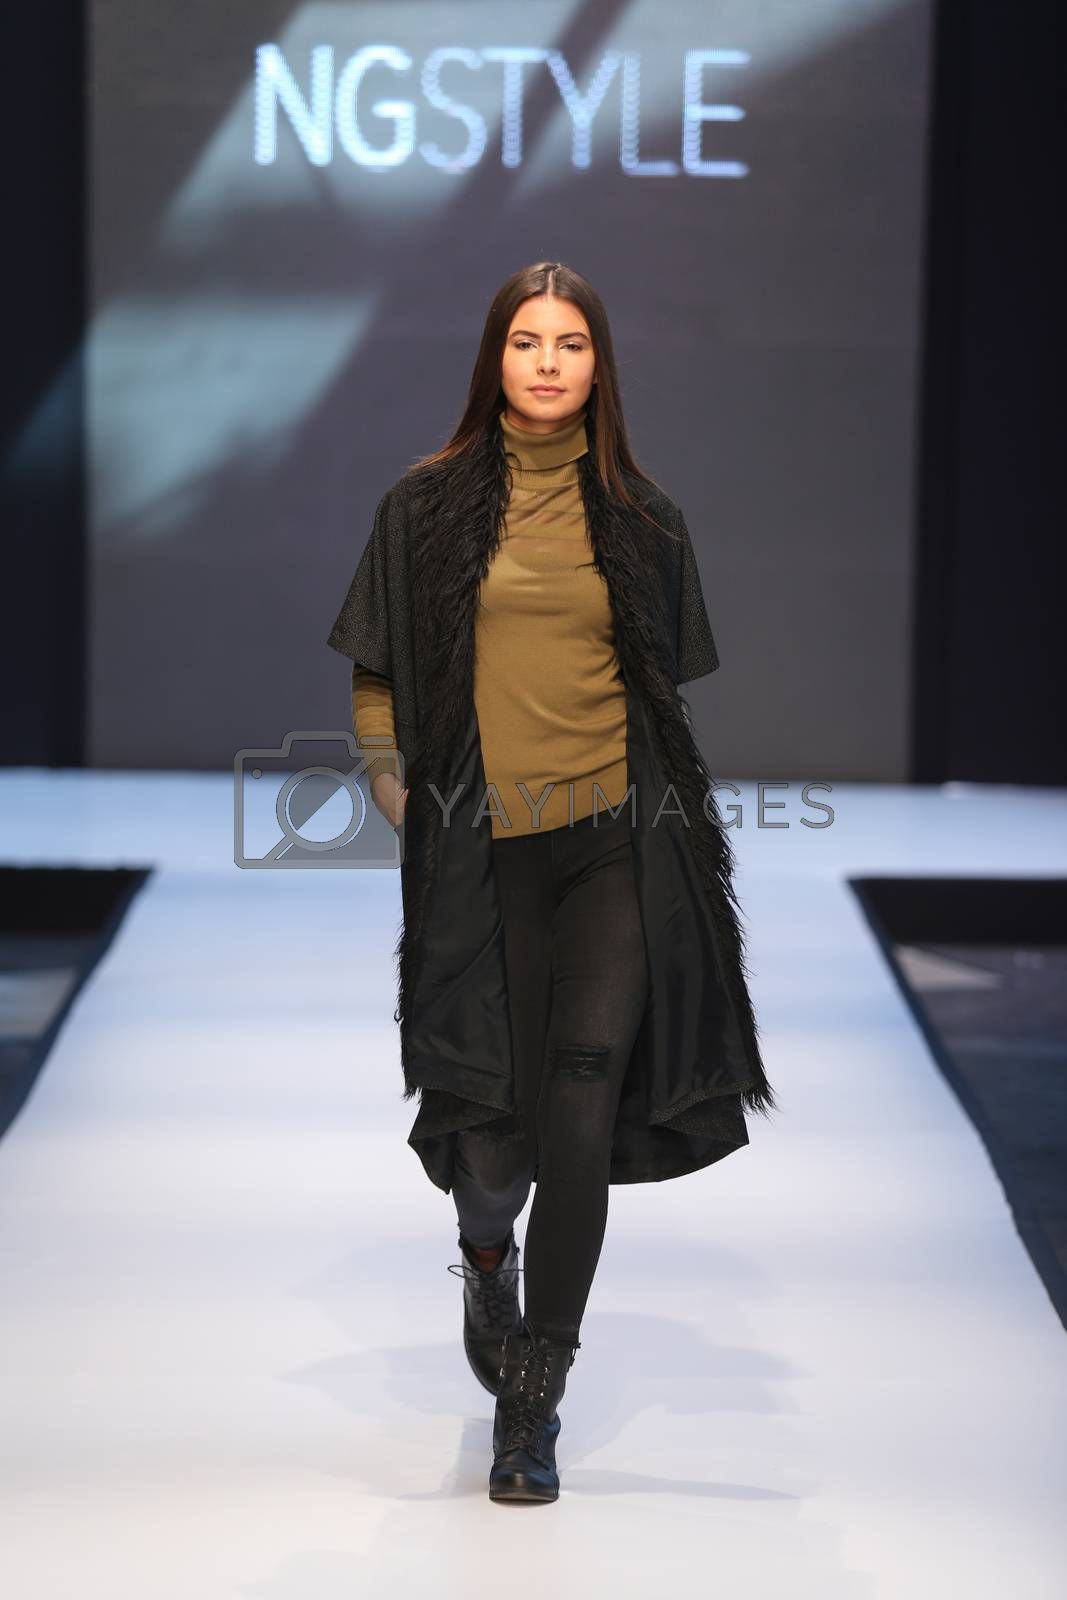 ISTANBUL, TURKEY - OCTOBER 10, 2015: A model showcases one of the latest creations of NGStyle in Forum Fashion Week